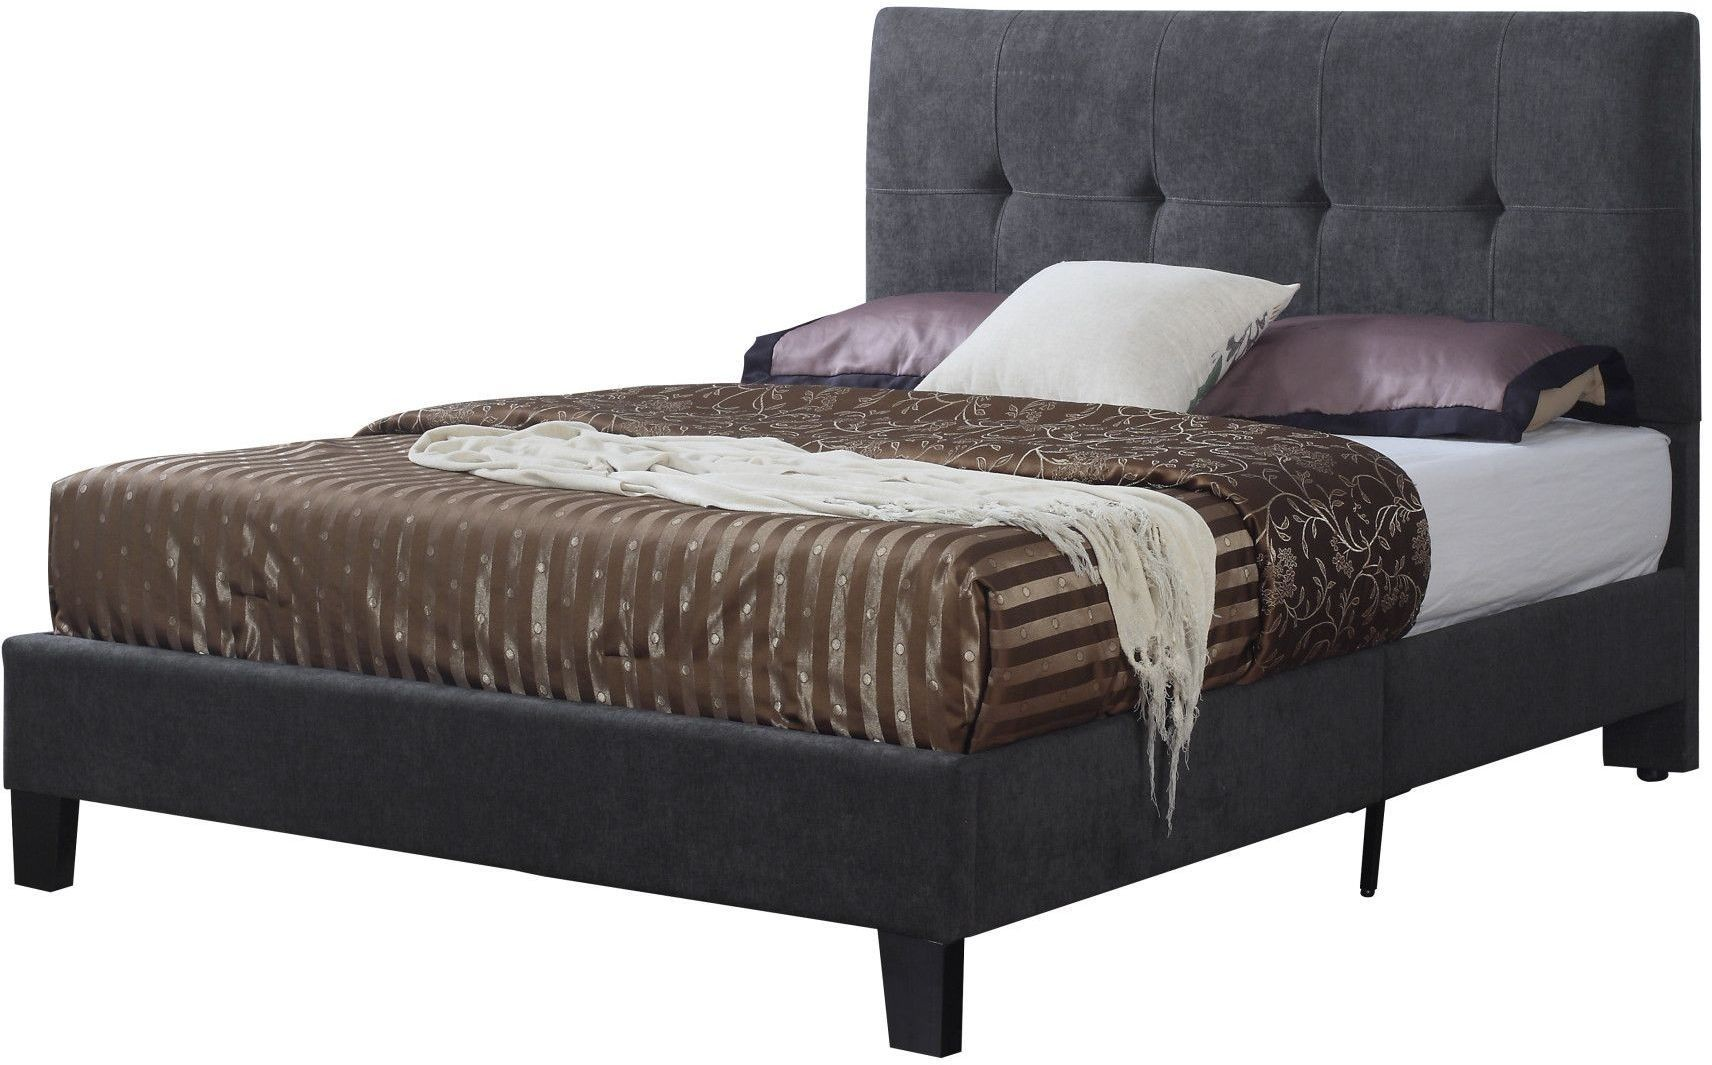 Harper Charcoal Cal King Upholstered Platform Bed From